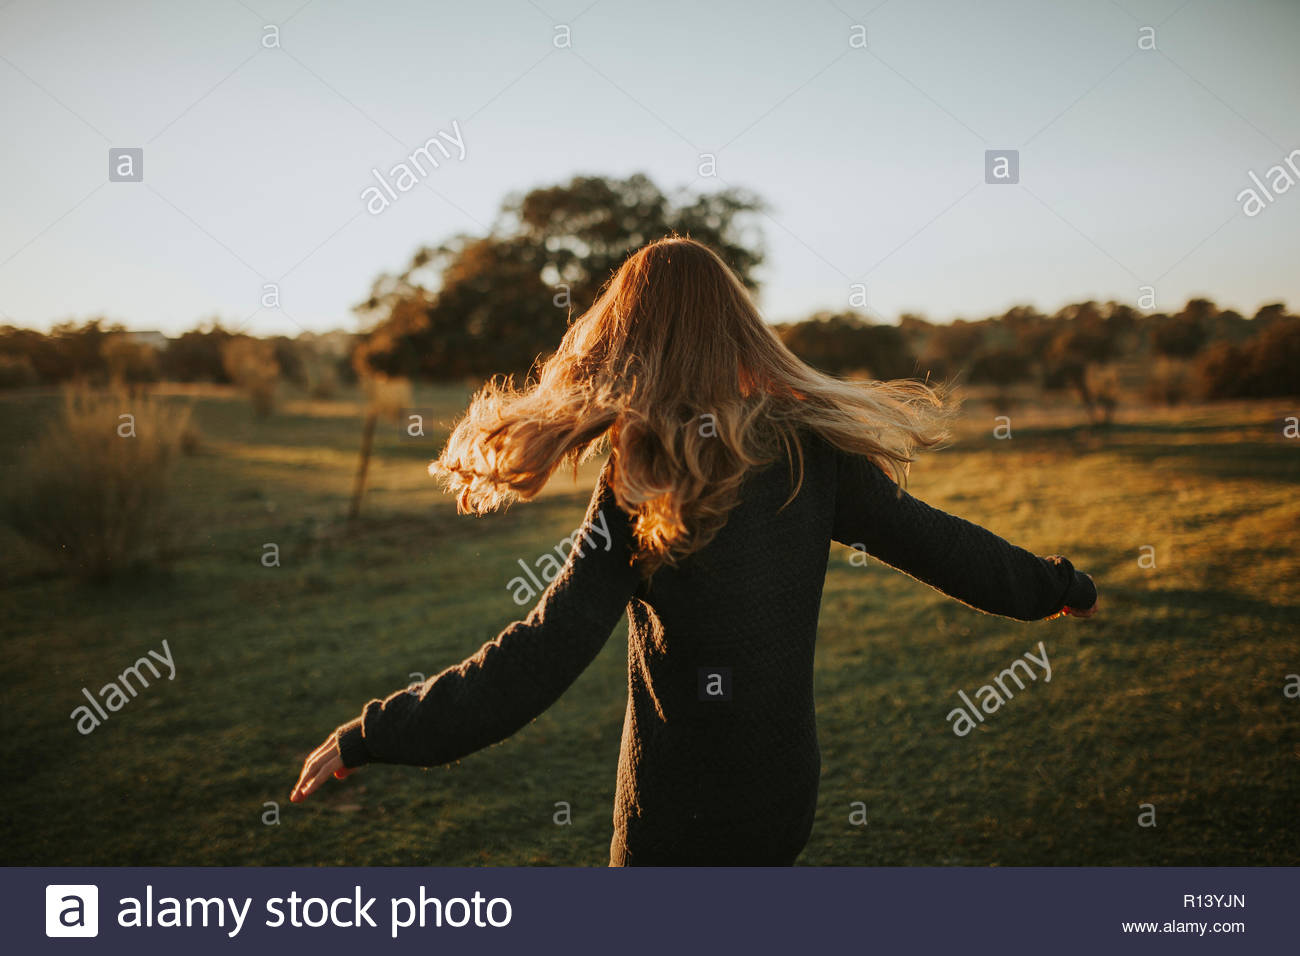 Rear view of a woman with long hair standing in a field on a sunny day - Stock Image